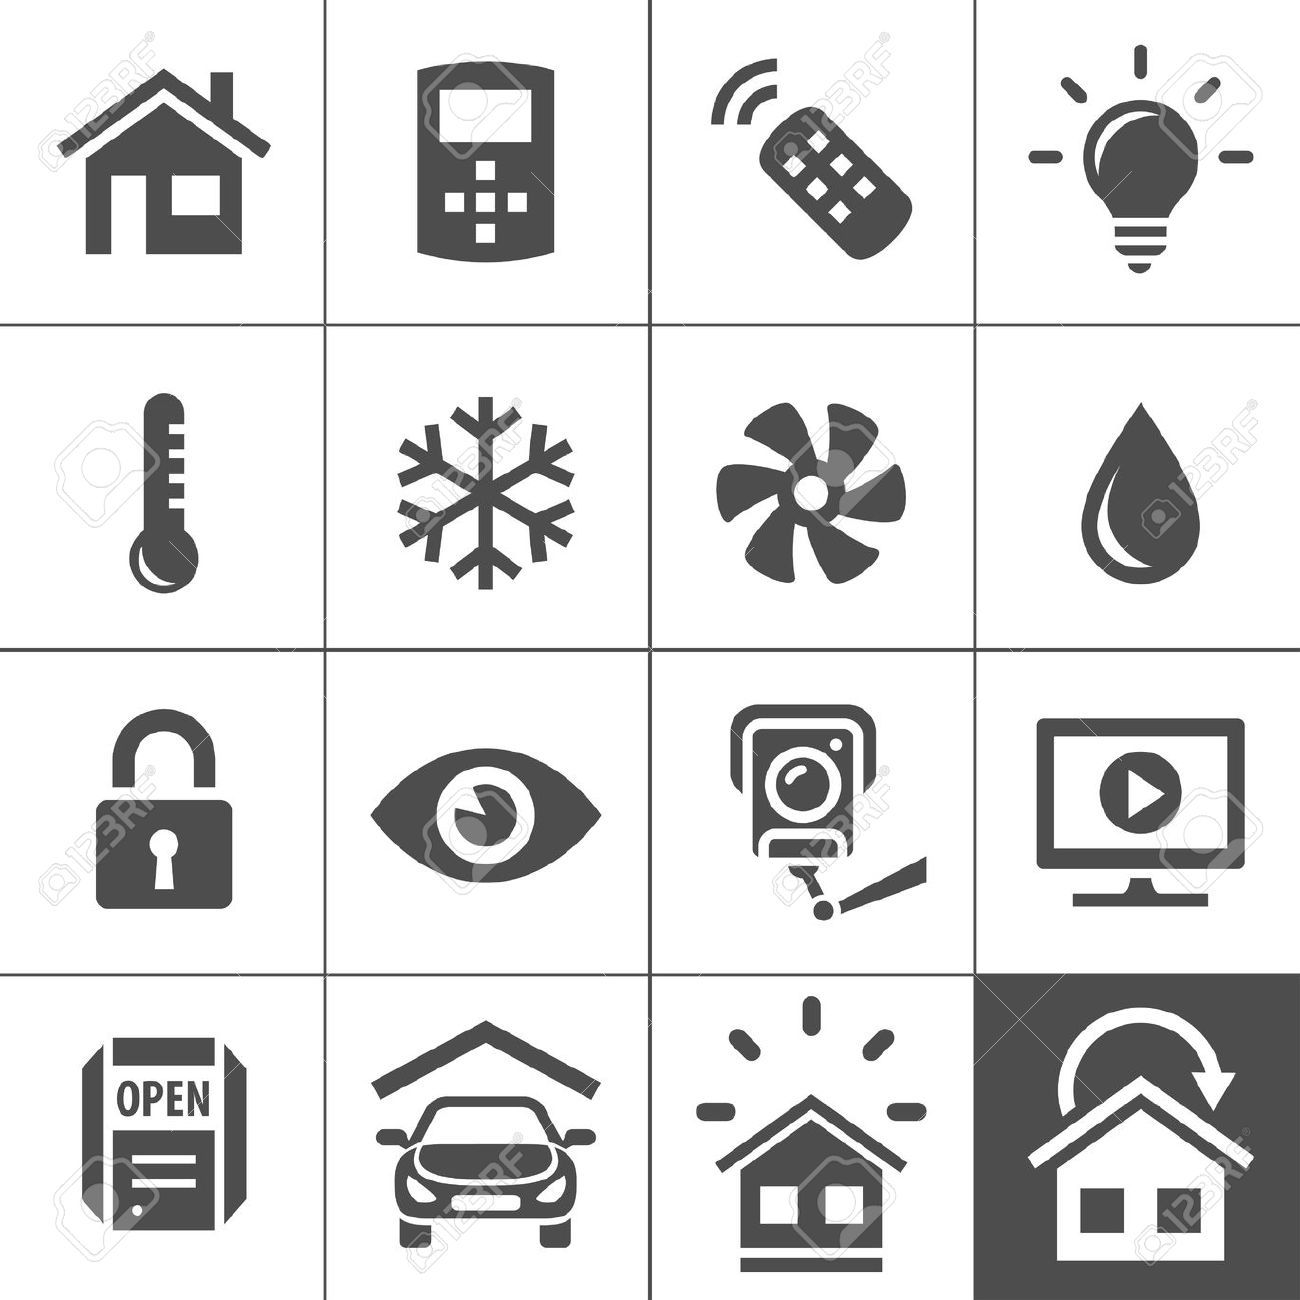 smart home icon Google 搜尋 디자인